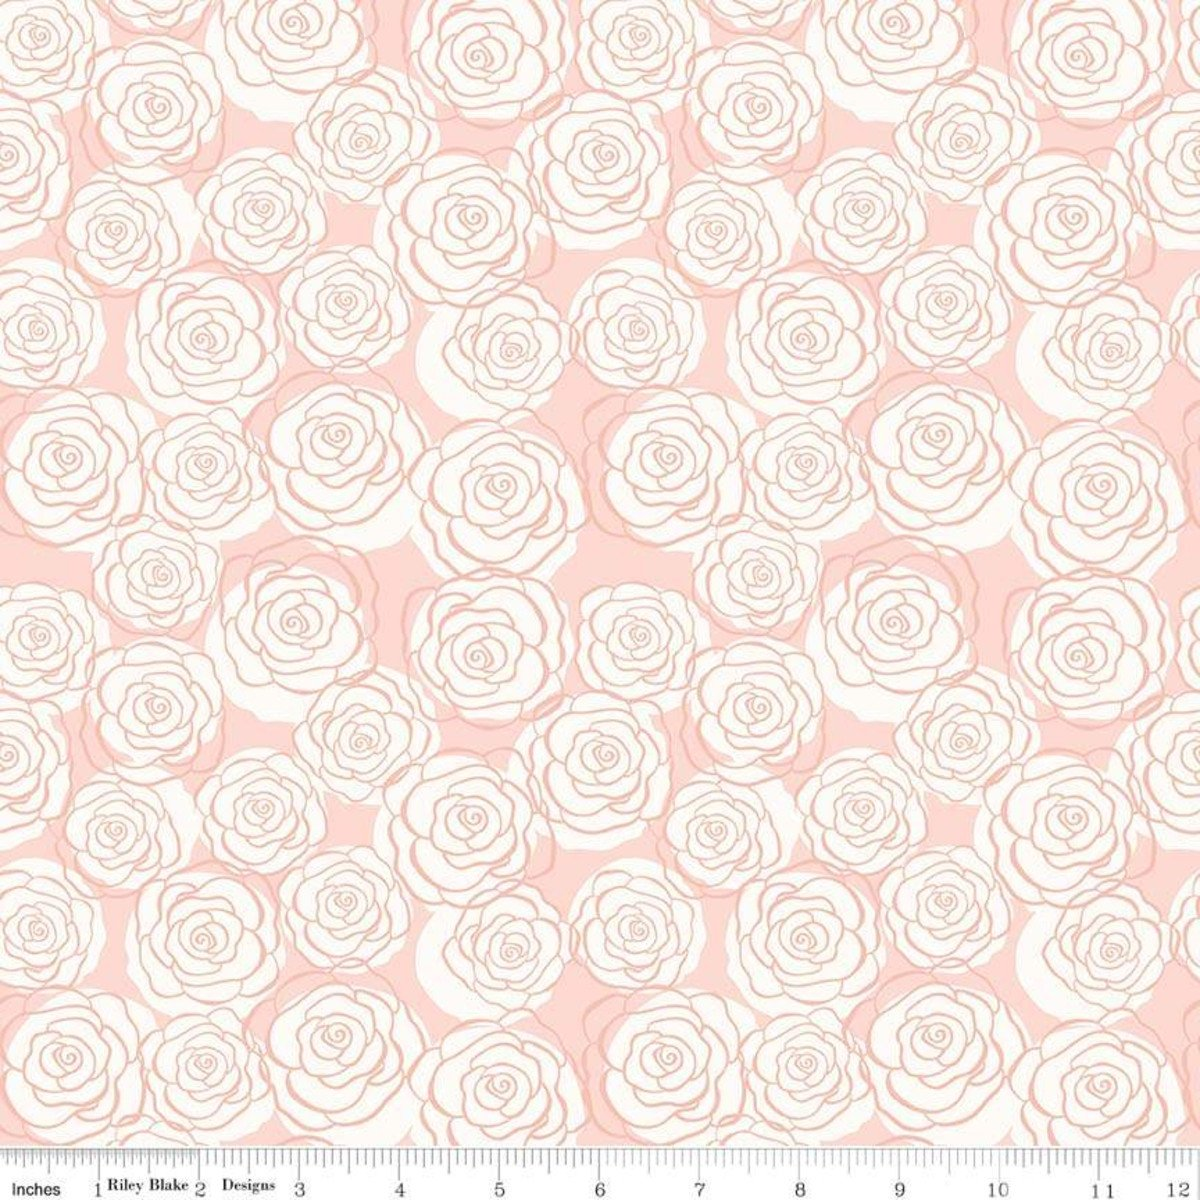 Bliss Roses Blush (Rose is Rose Gold Sparkle) - sc8162